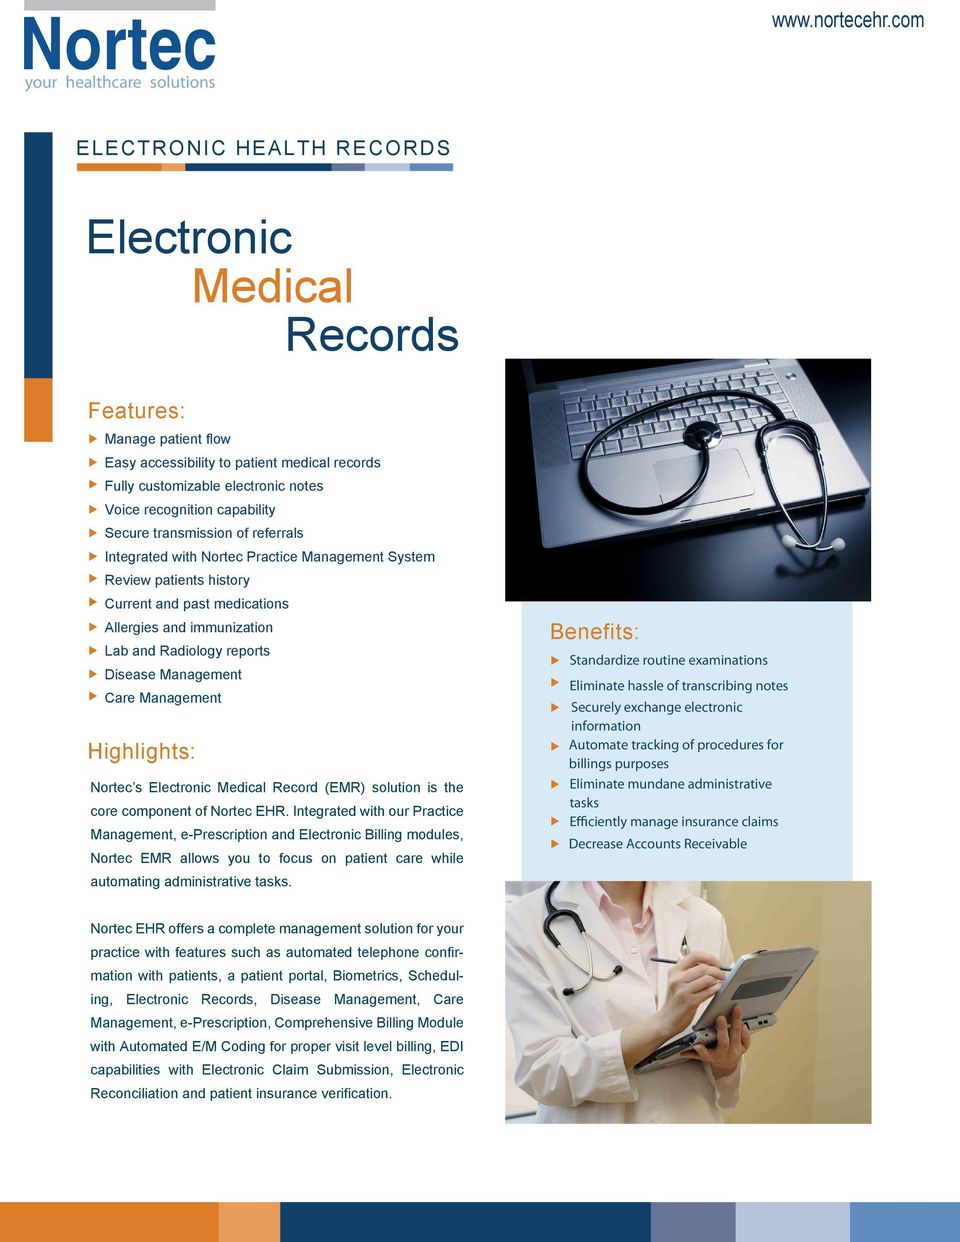 Electronic Medical Record (EMR) solution is the core component of Nortec EHR.